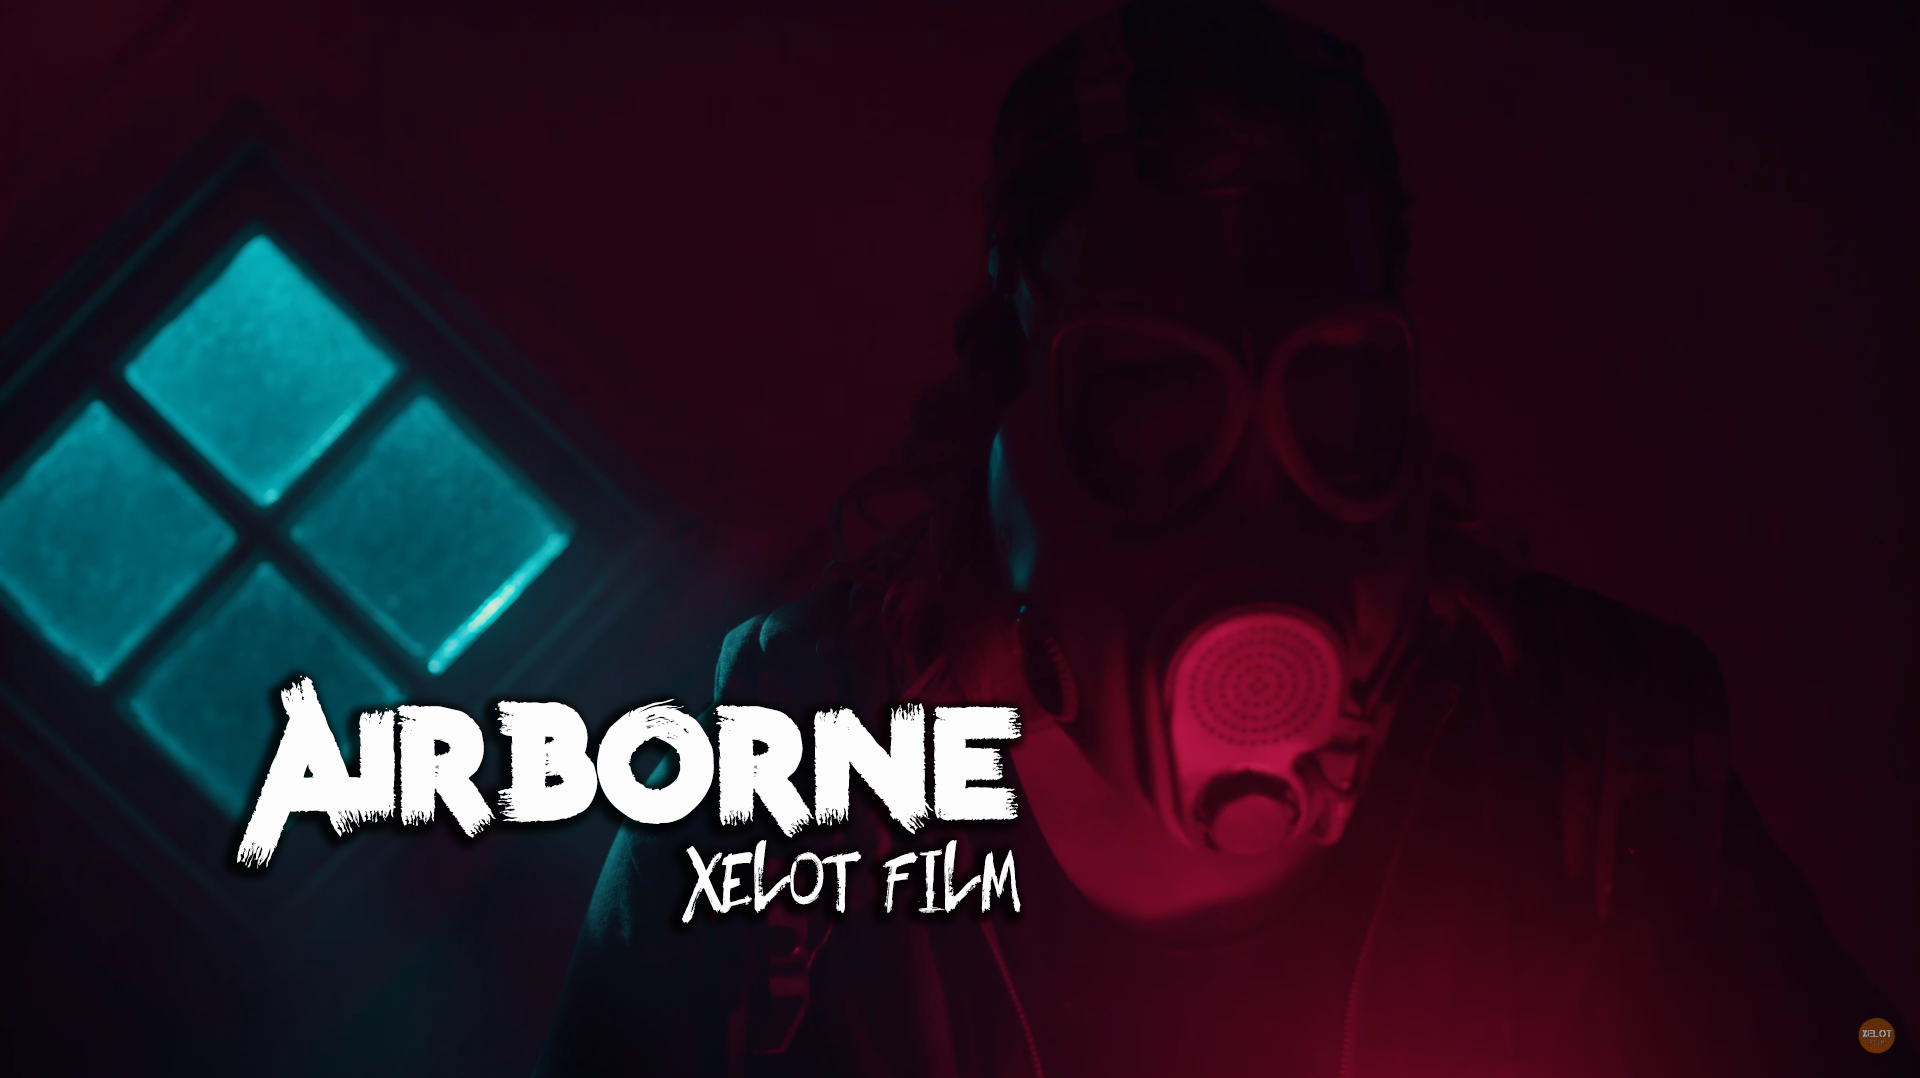 Airborne 2019 Currently available as a teaser/short film on youtube.